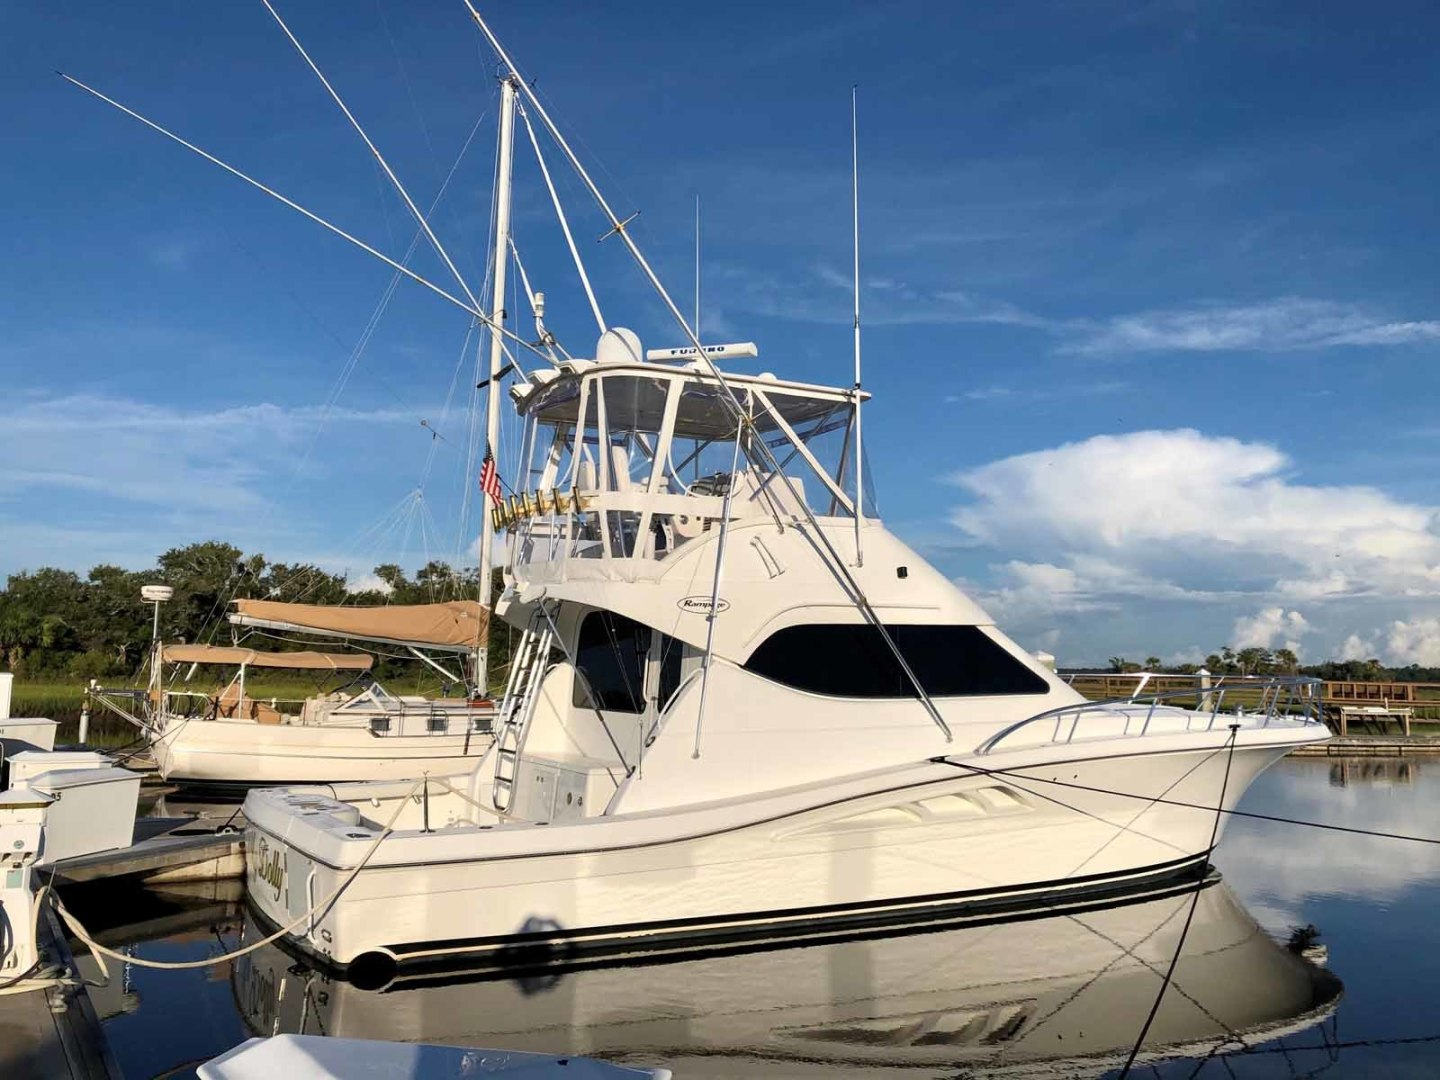 Rampage-45 SF 2004-MY DOLLY Ft. Lauderdale-Florida-United States-Starboard Side-1464083 | Thumbnail